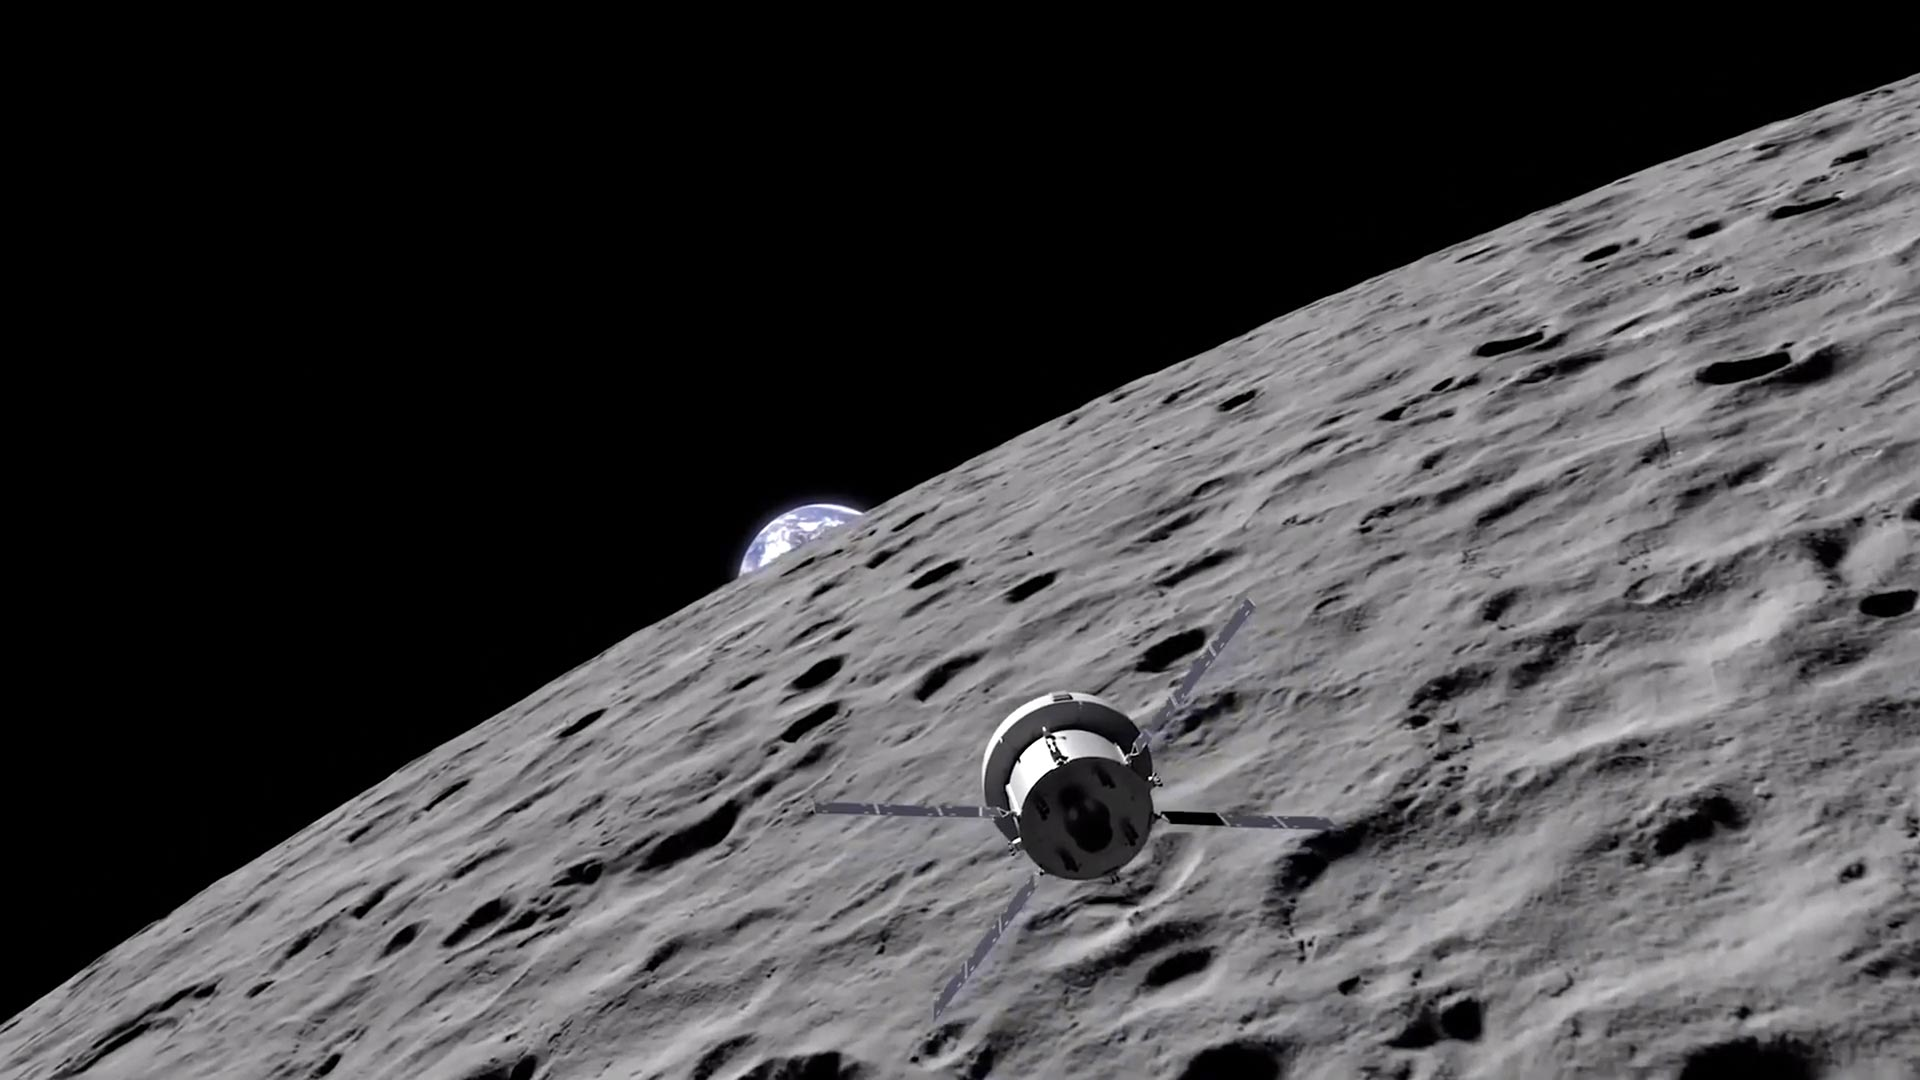 NASA wants to buy moon resources from private companies